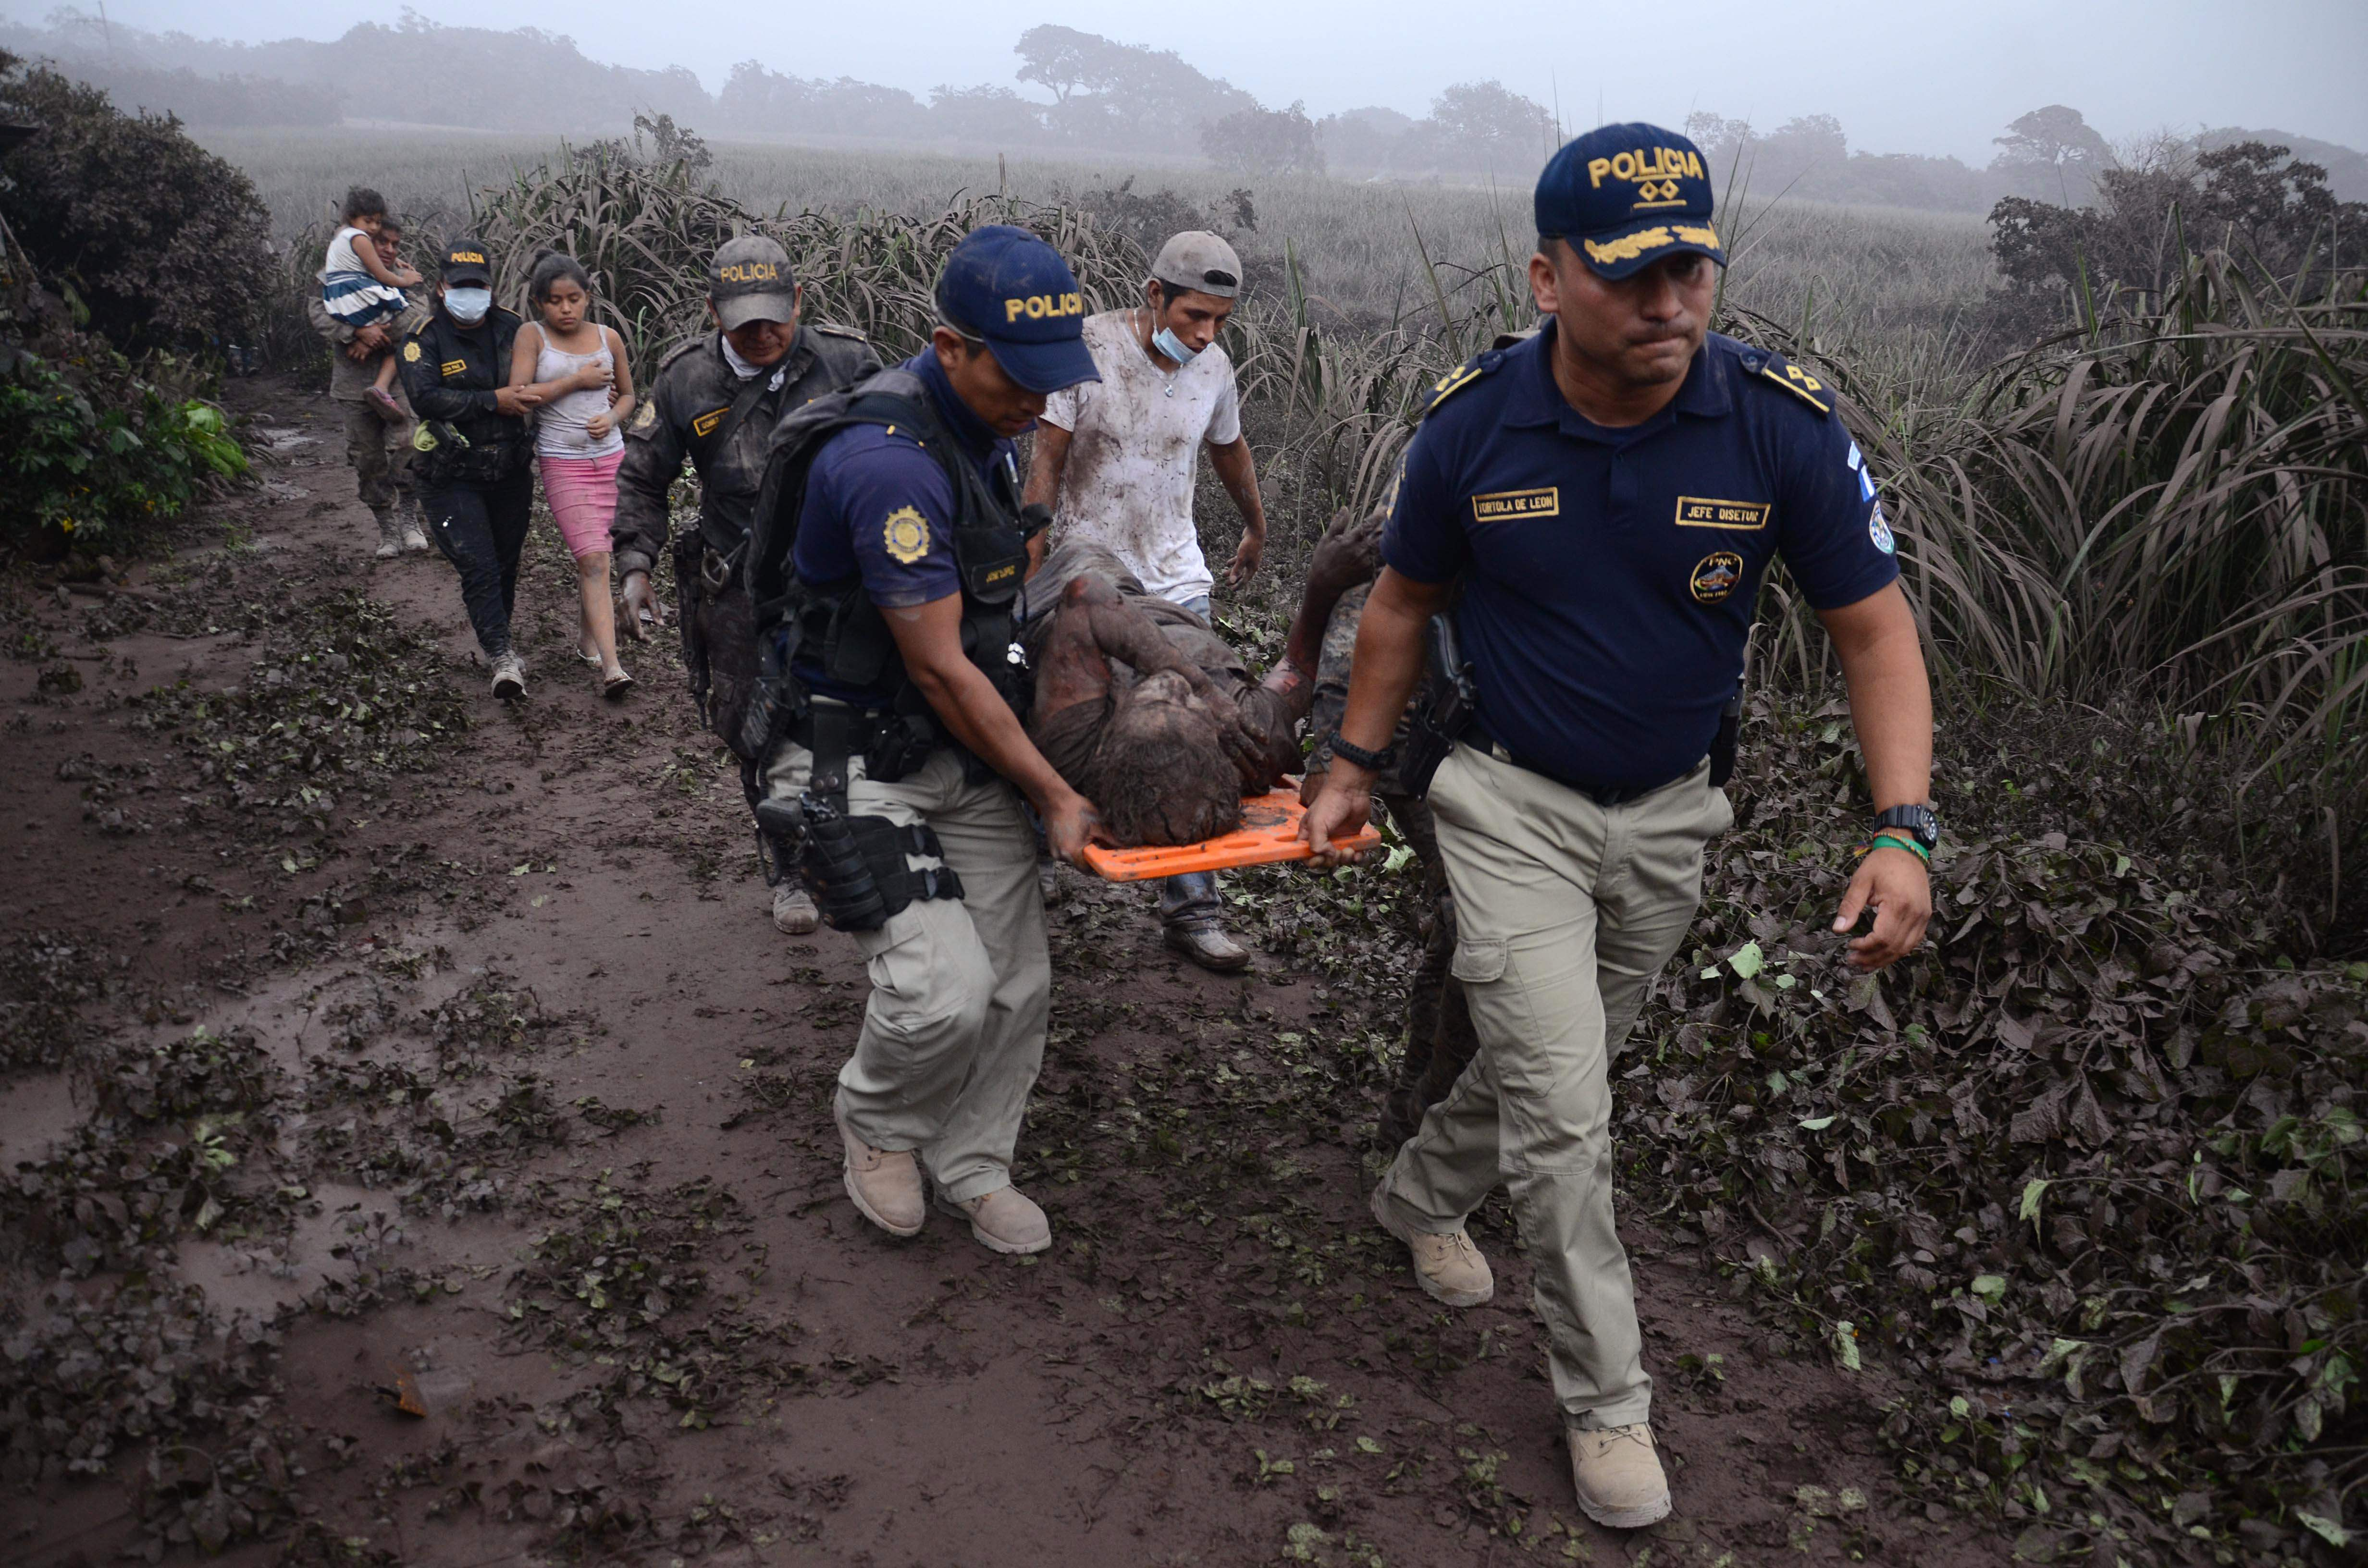 At least 25 dead as volcano erupts in Guatemala